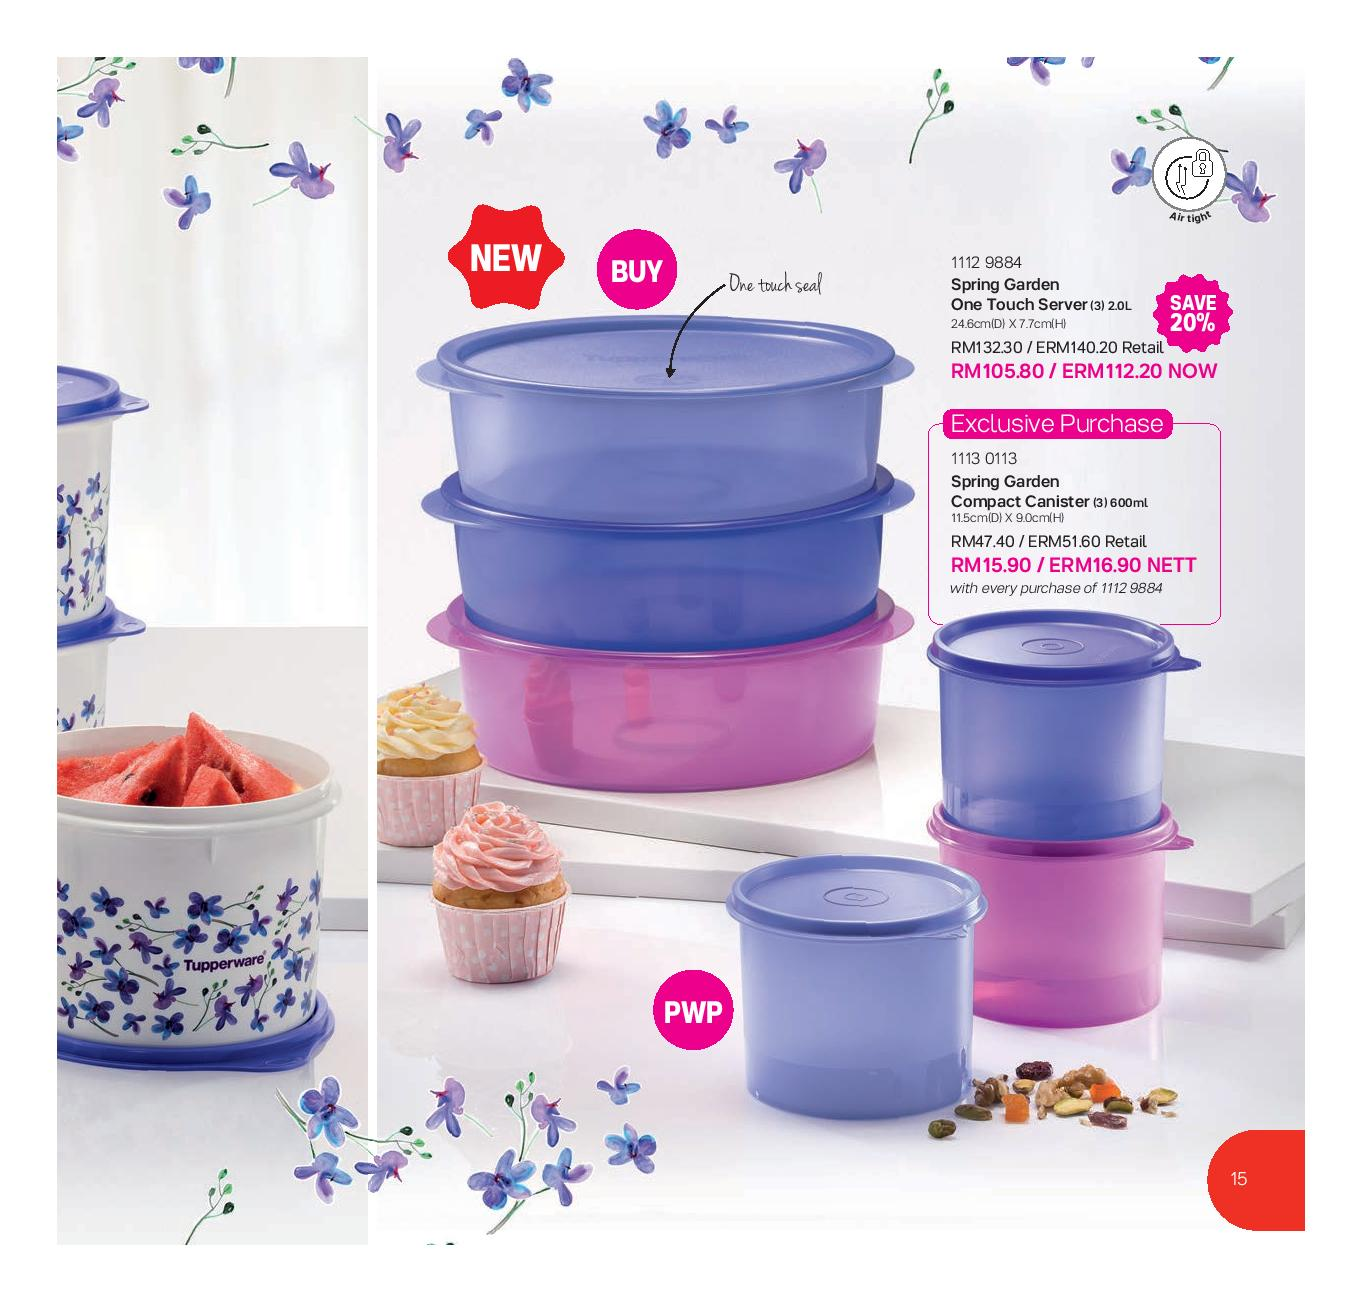 Avon Valentines Coupon together with Catalogtupperware blogspot further Avon Beauty Bundle Summer Tote Bag 15 in addition Tupperware Catalog 13 February 2017 31 also Avon Anew Reversalist. on avon catalogs for 2016